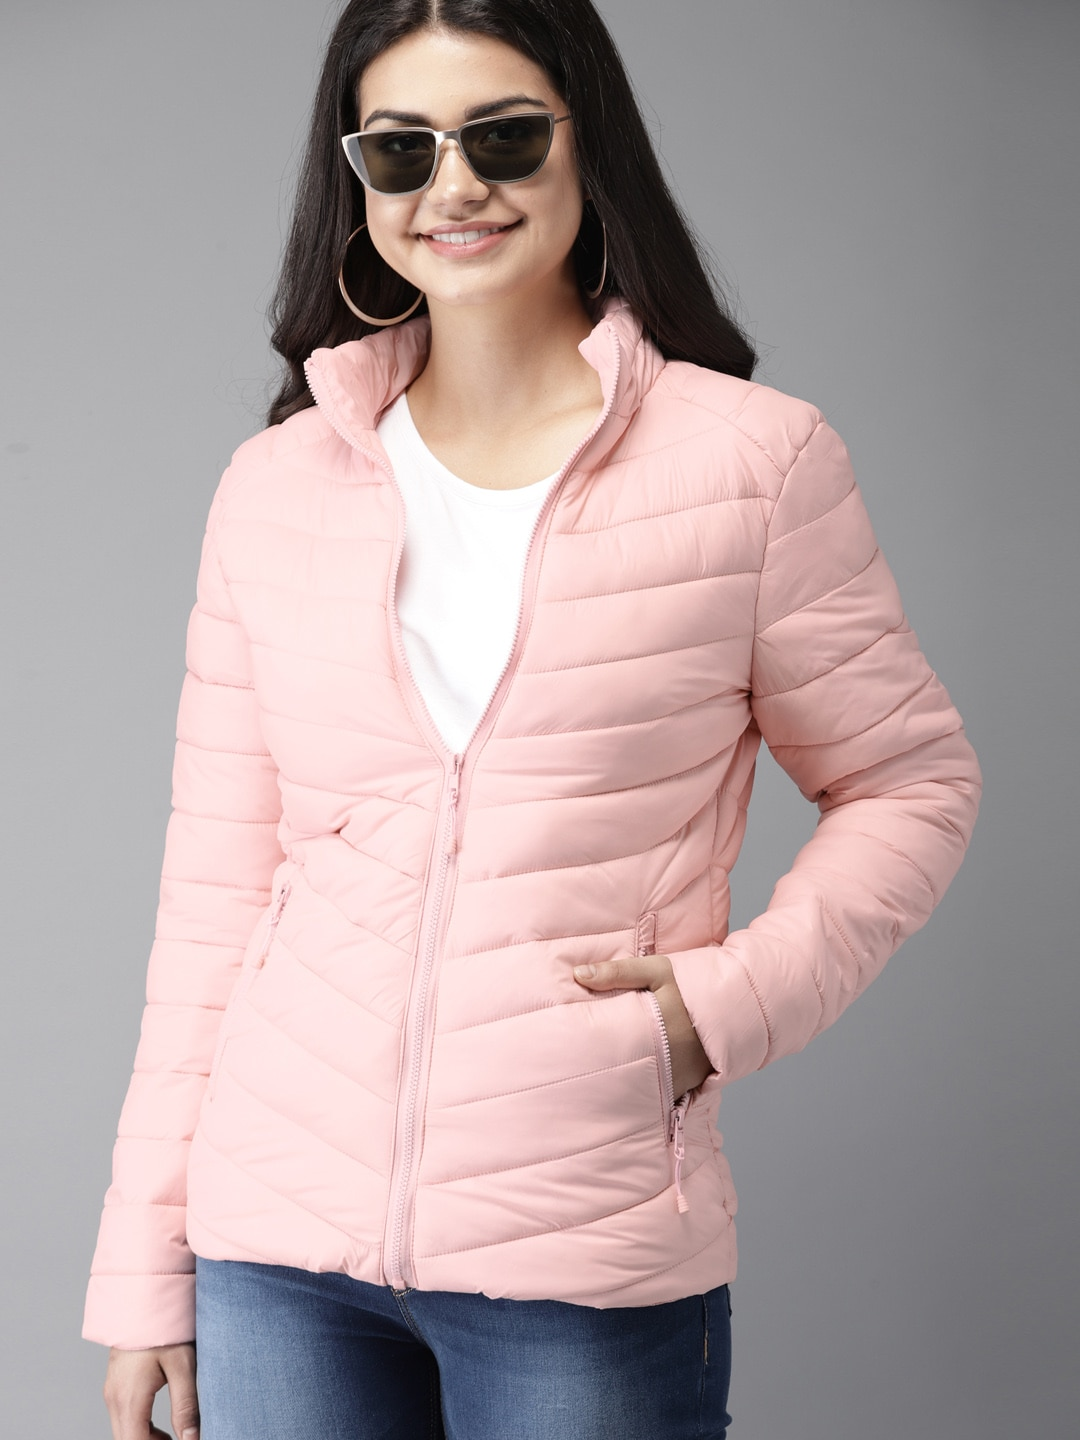 e38912fc9 HERE&NOW Women Pink Solid Puffer Jacket